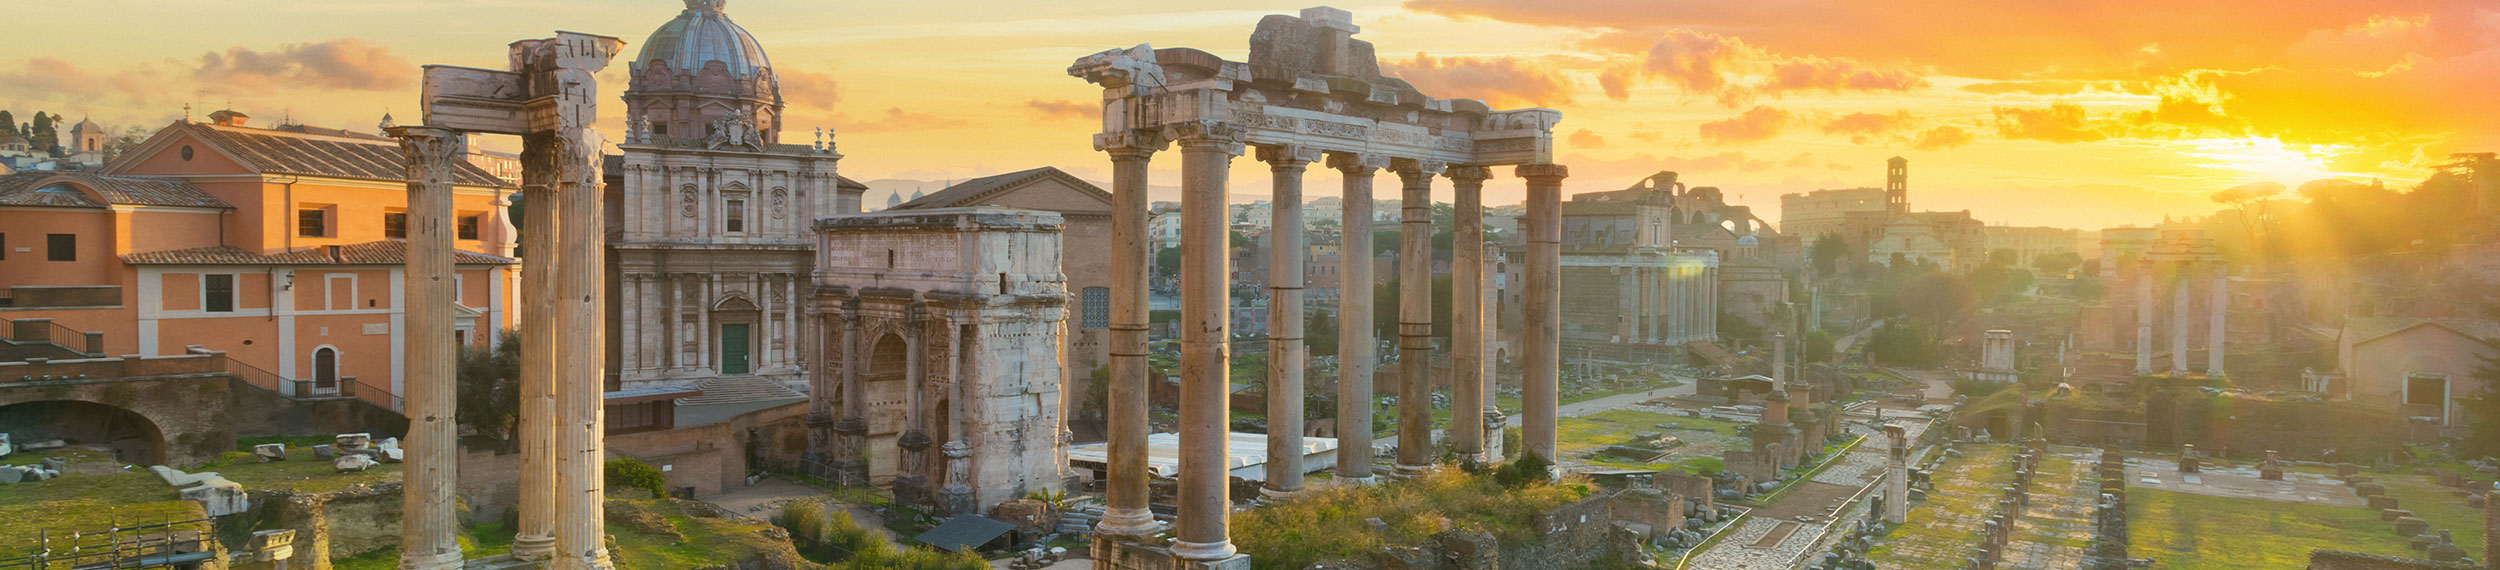 View of the Ruins of Roman Forum during sunrise with the Arch of Septimius Severus, the Temple of Saturn, the colonnade of Basilica Julia, and the Temple of Castor and Pollux in Rome, Italy.